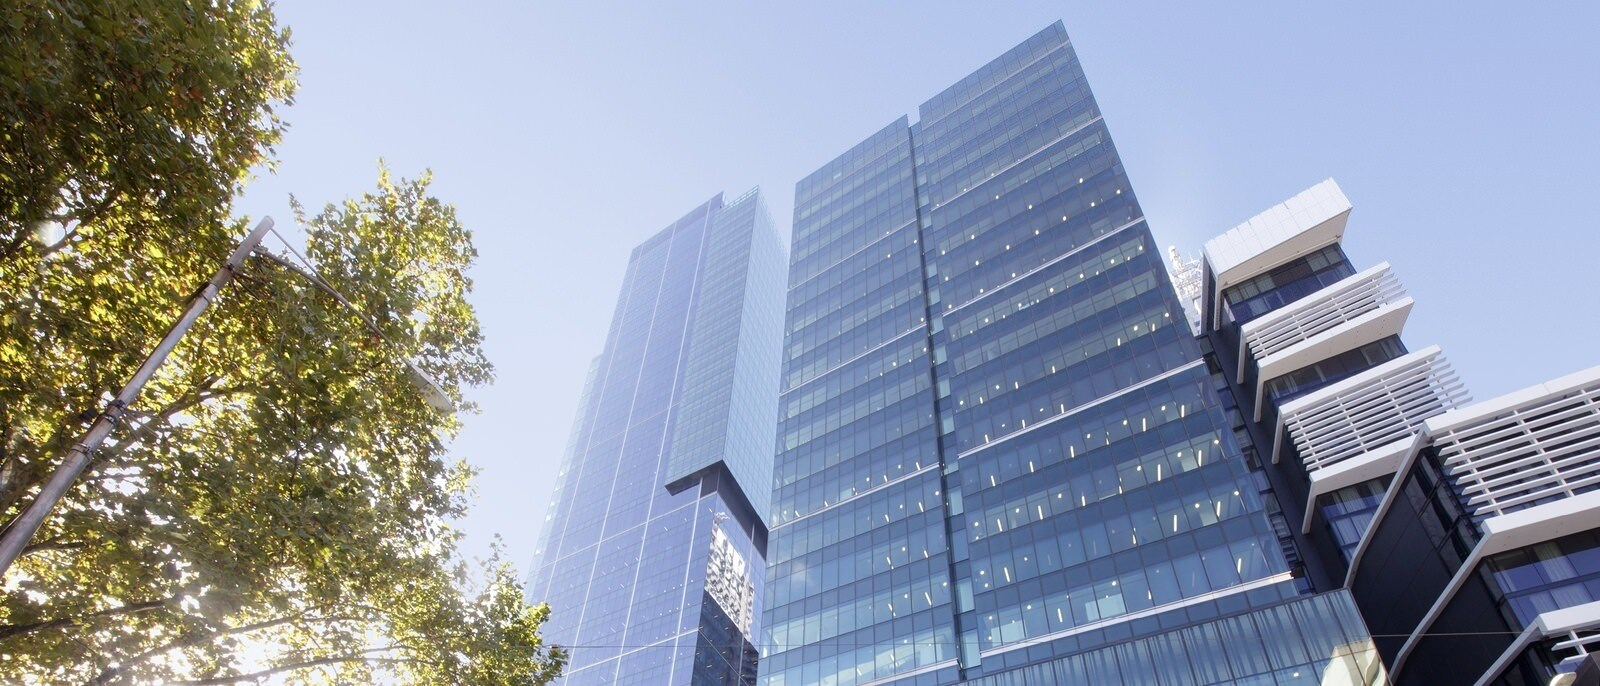 A low angle shot of trees next to tall buildings and a tower that are pointing to the sky.